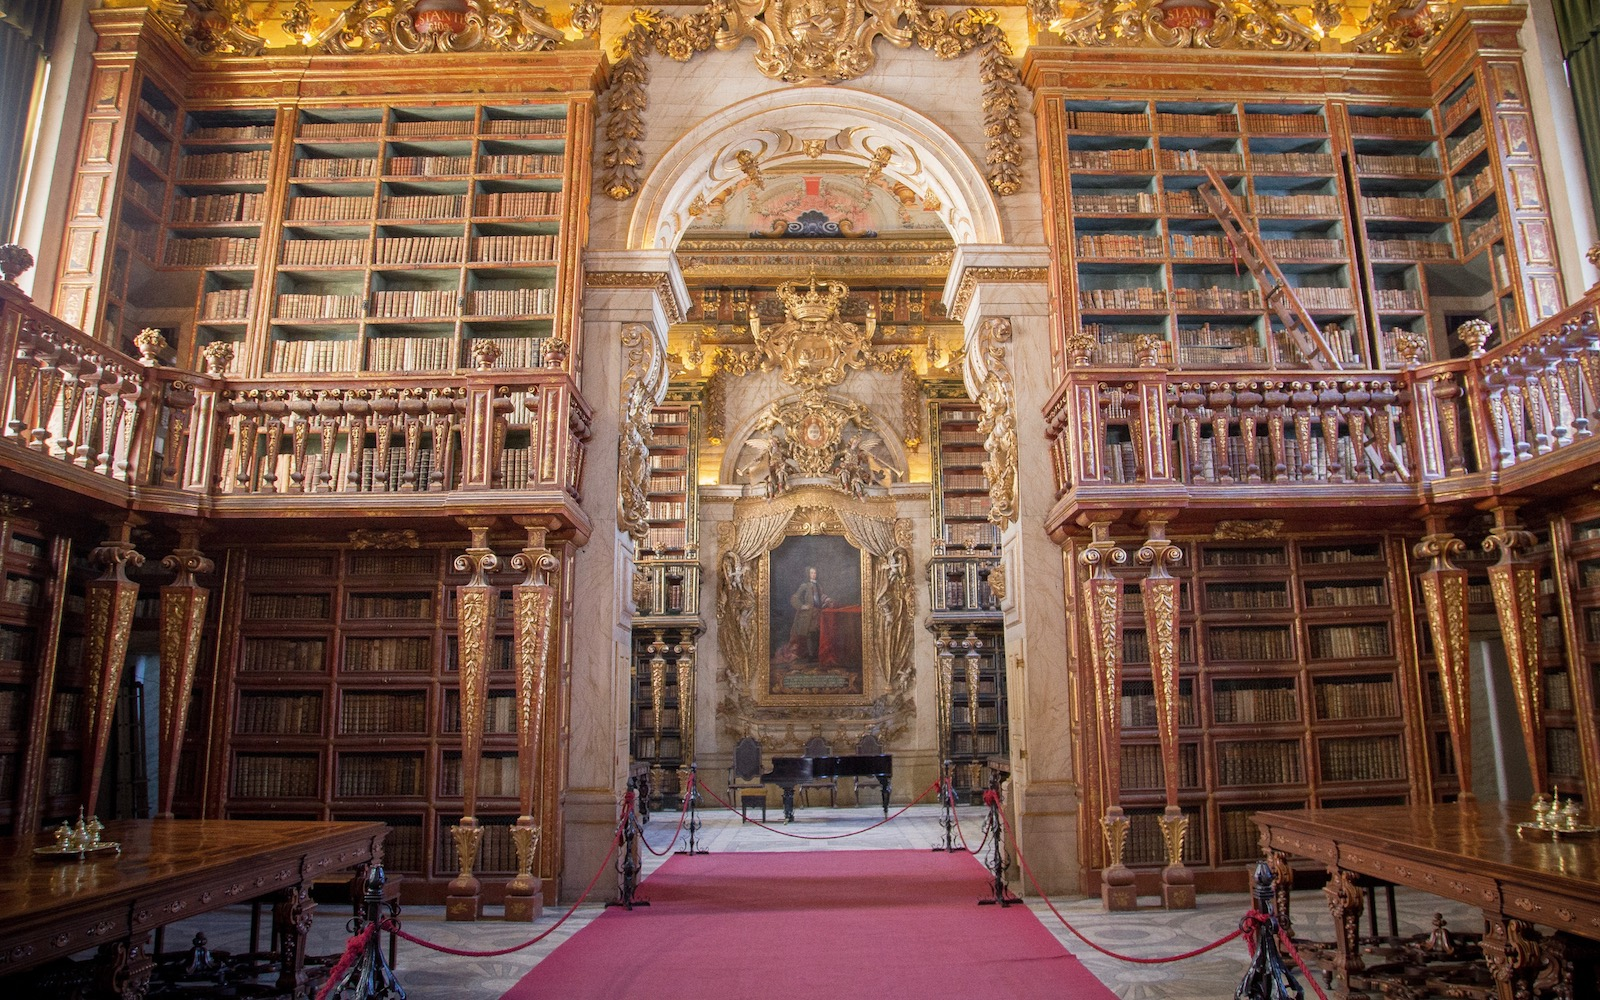 University of Coimbra library in Portugal